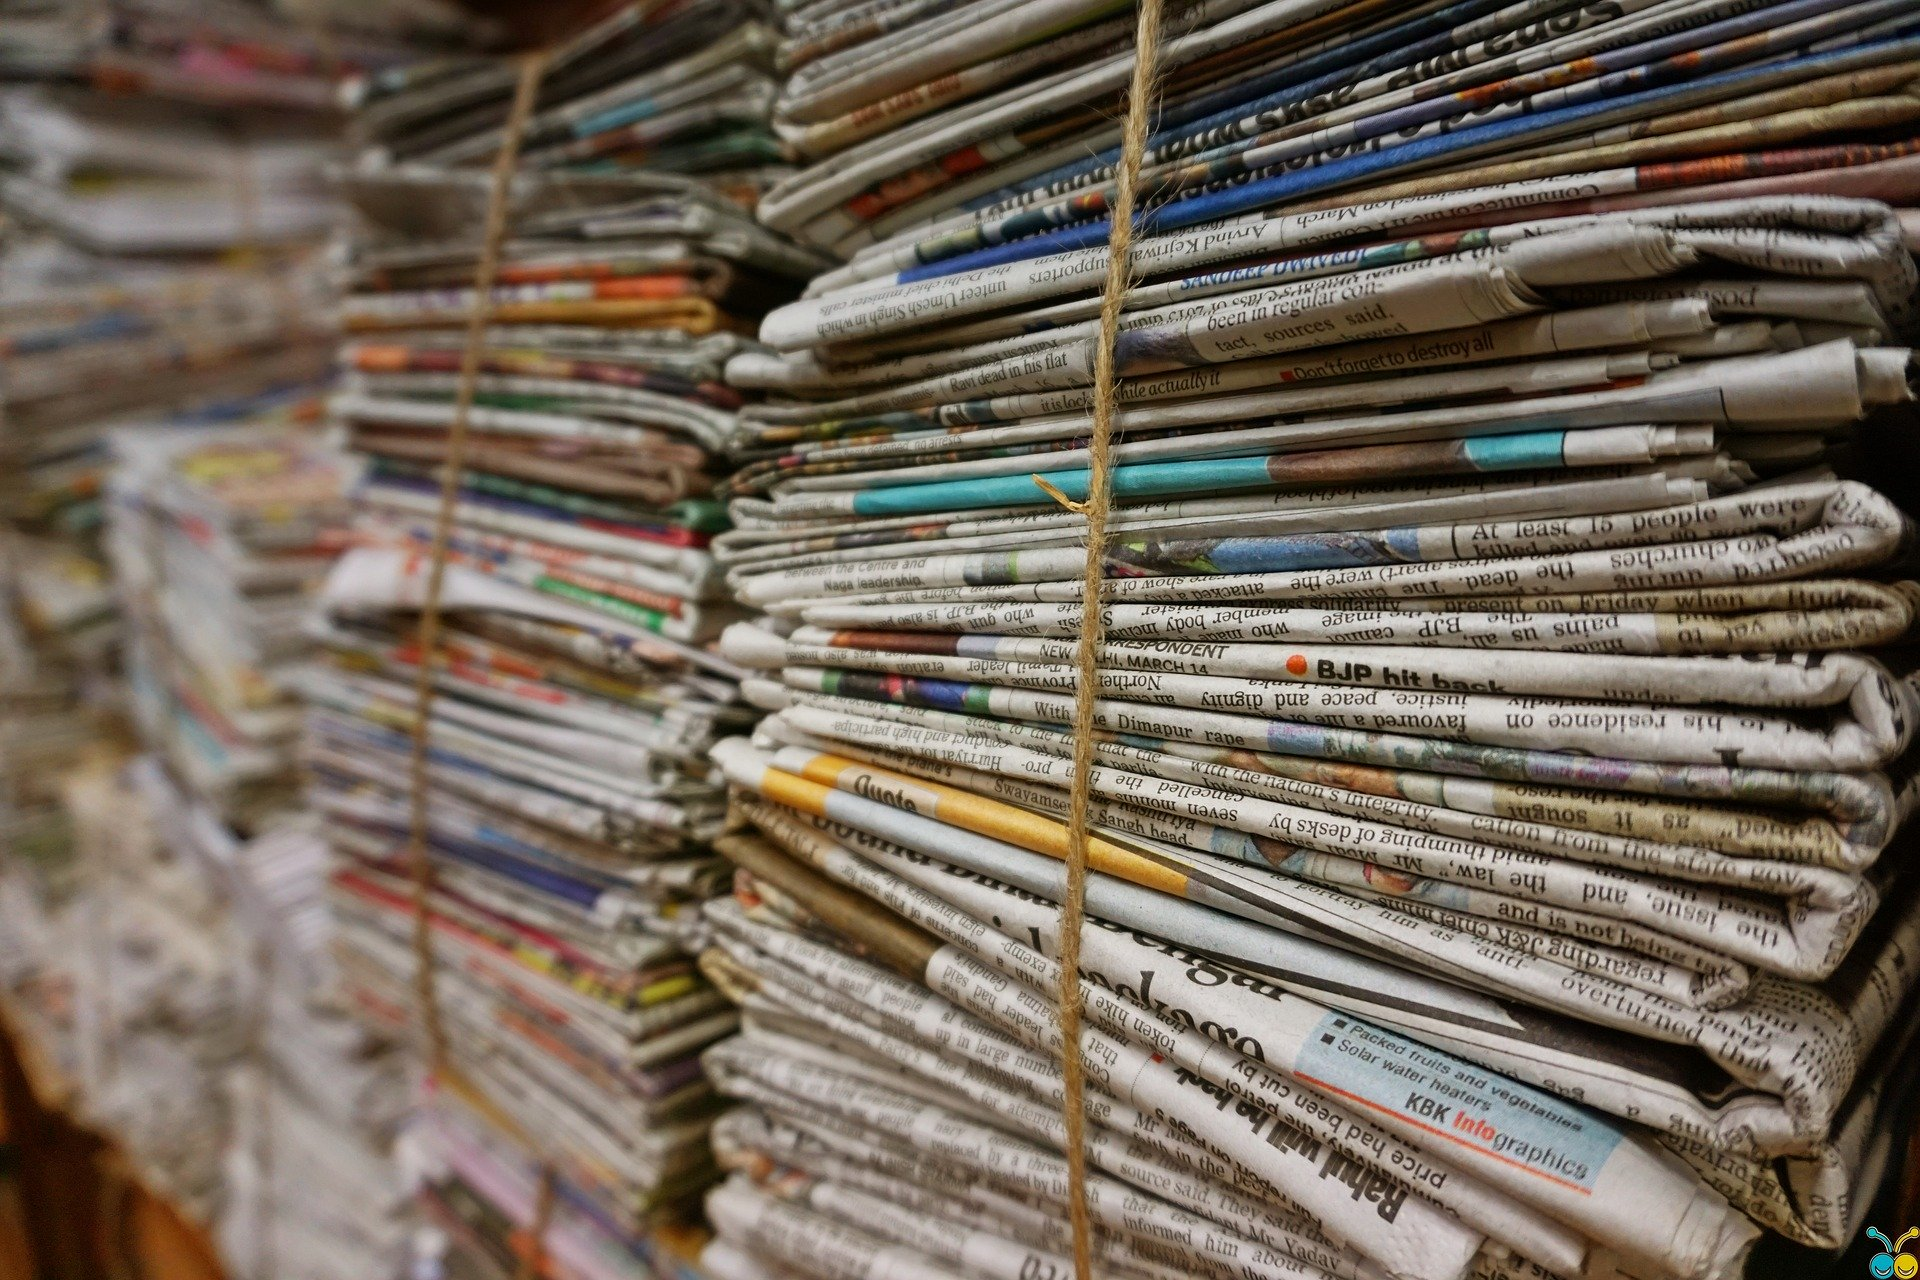 Stacks of newspapers tied together with rope